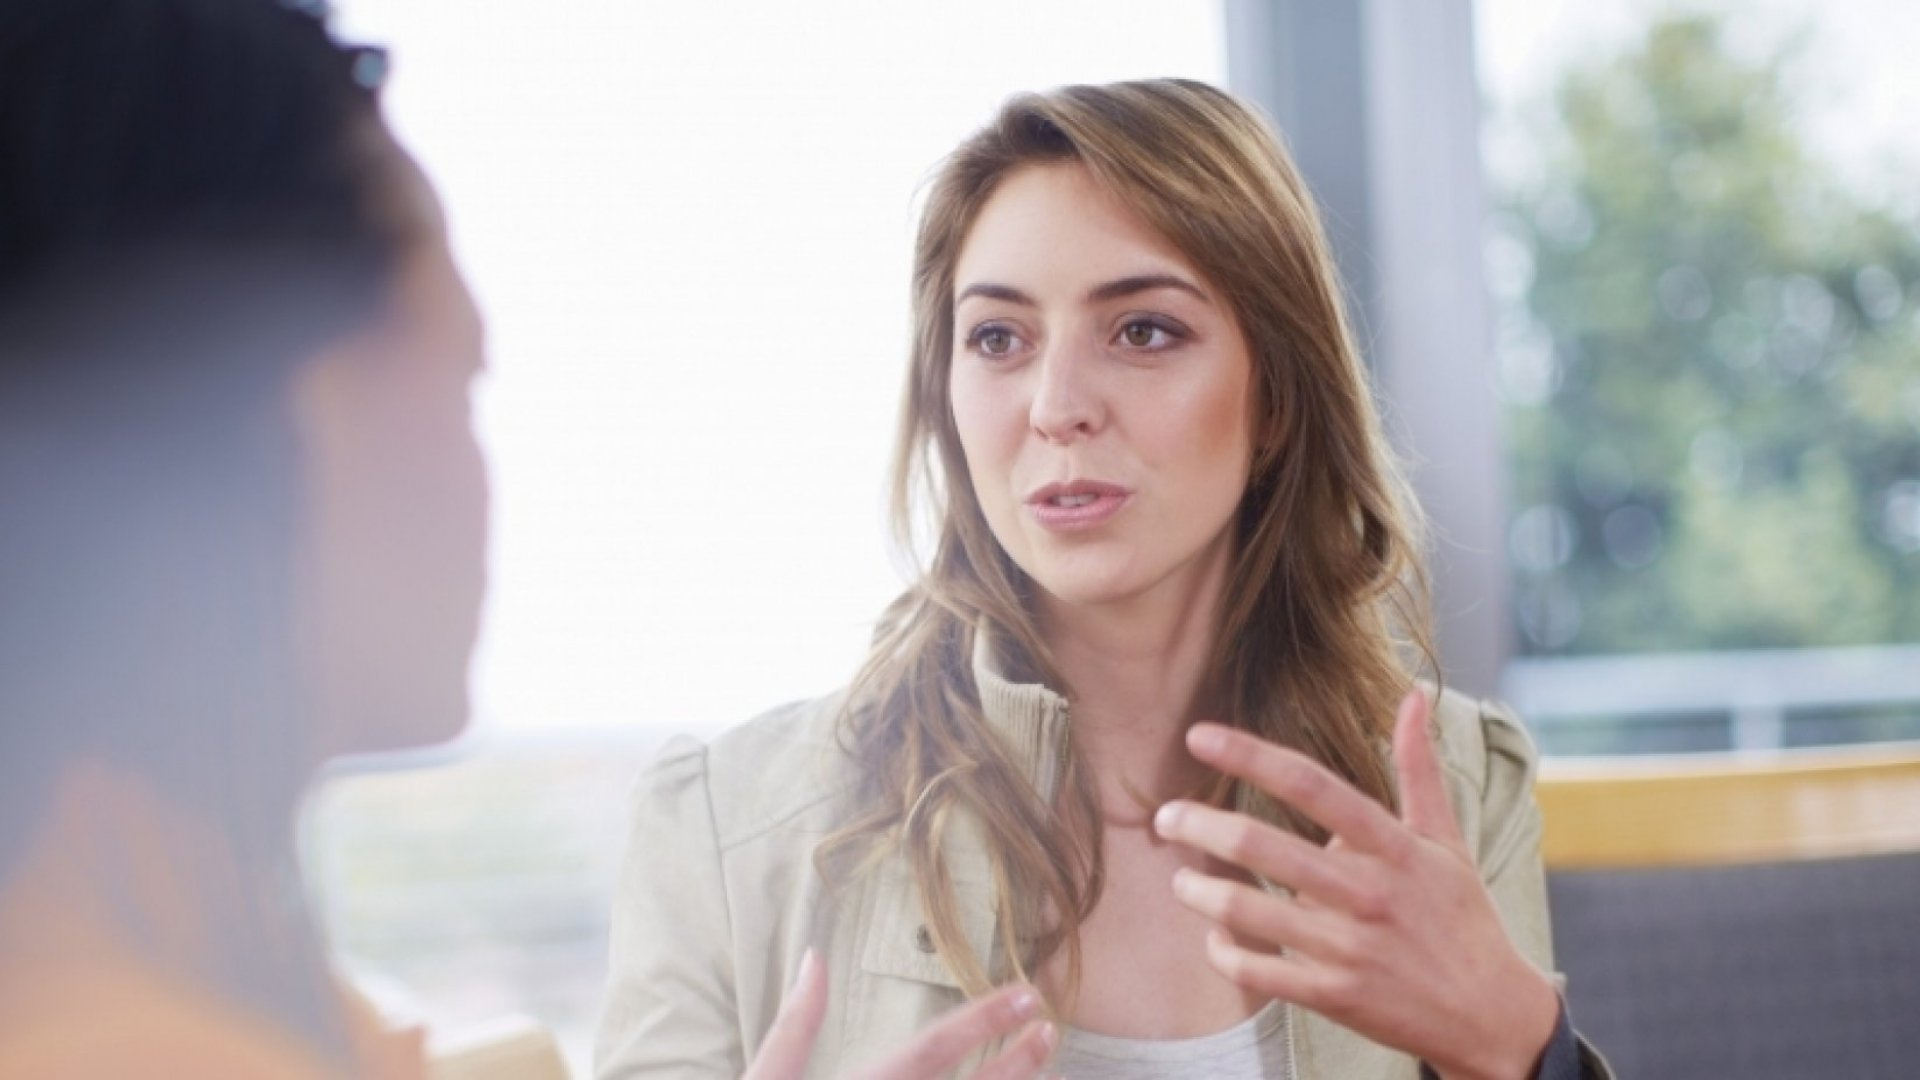 2 Ways You Can Start Having Better, More Interesting Conversations